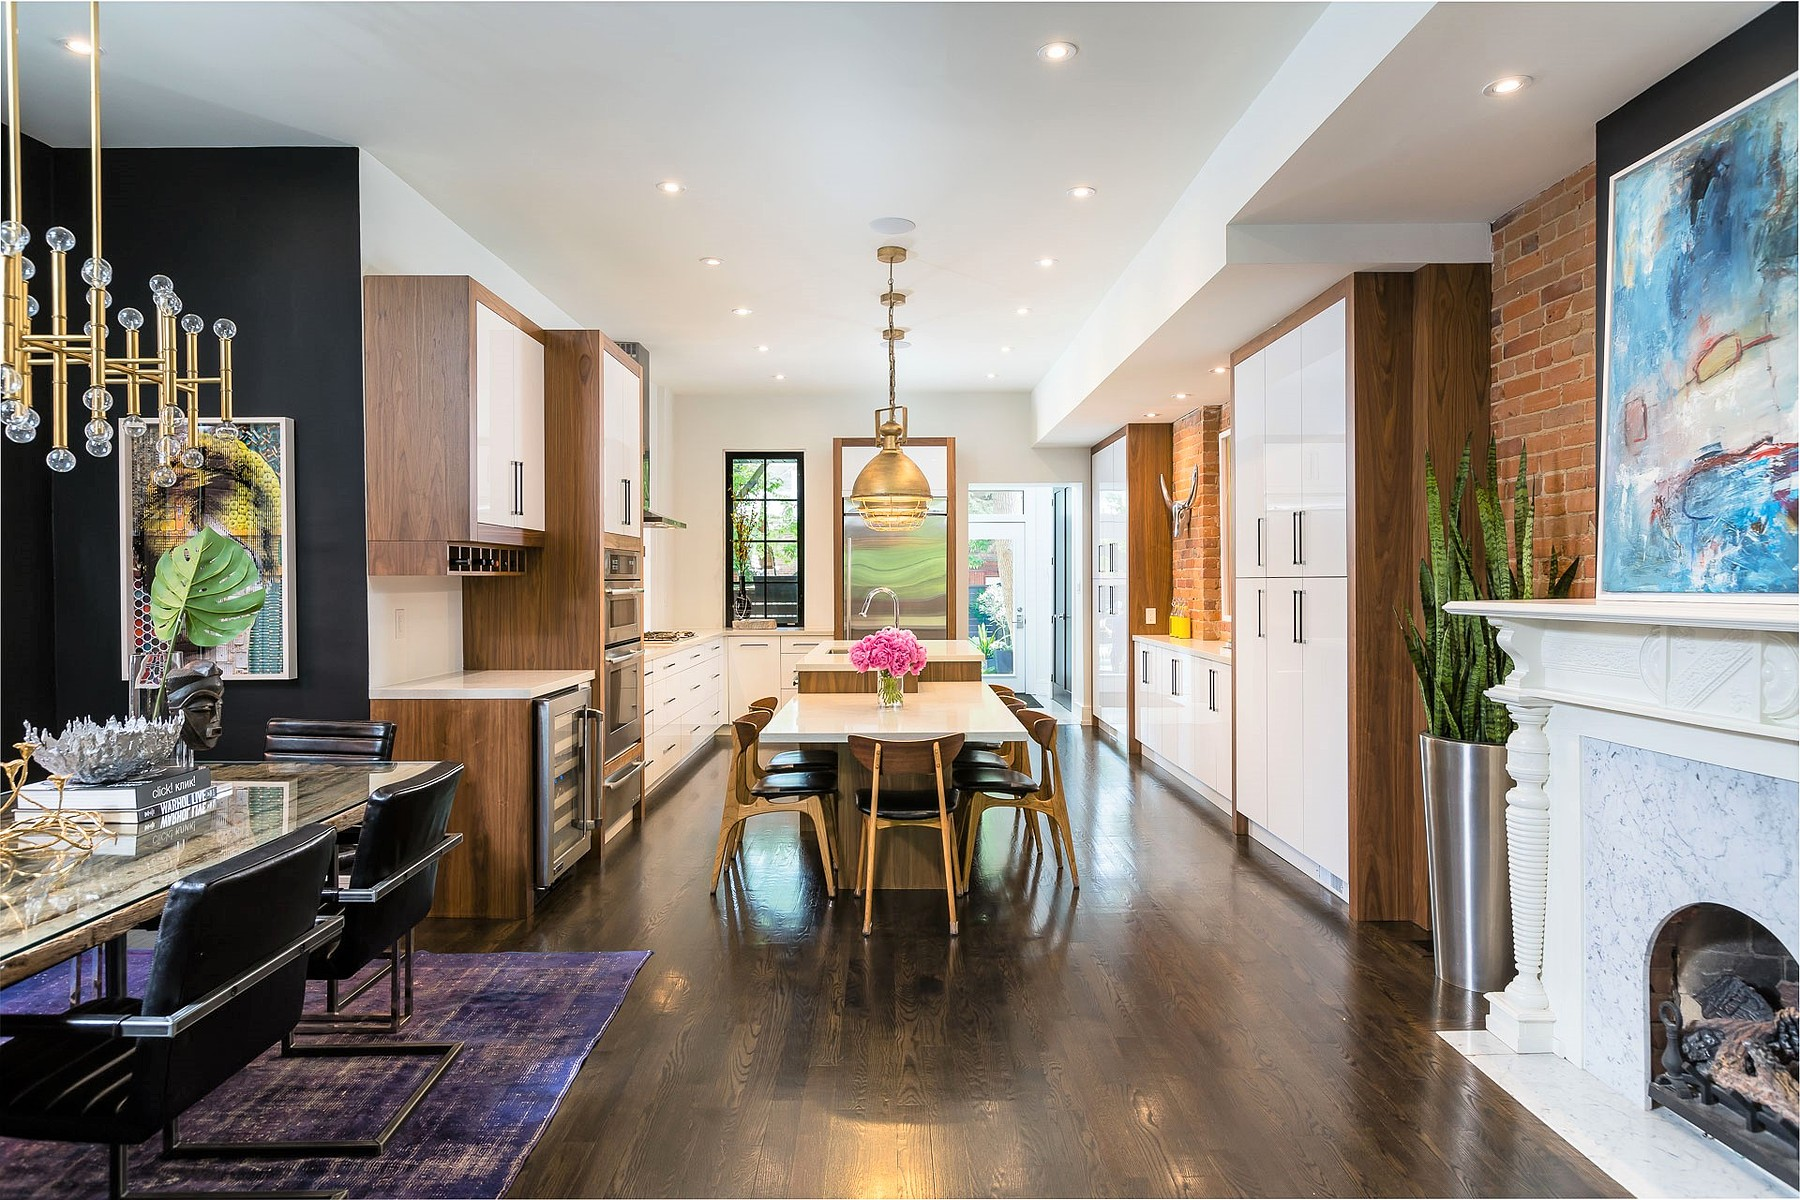 Single Family Home for Sale at Restored Modernized Expanded 155 Madison Ave Toronto, Ontario M5R2S6 Canada